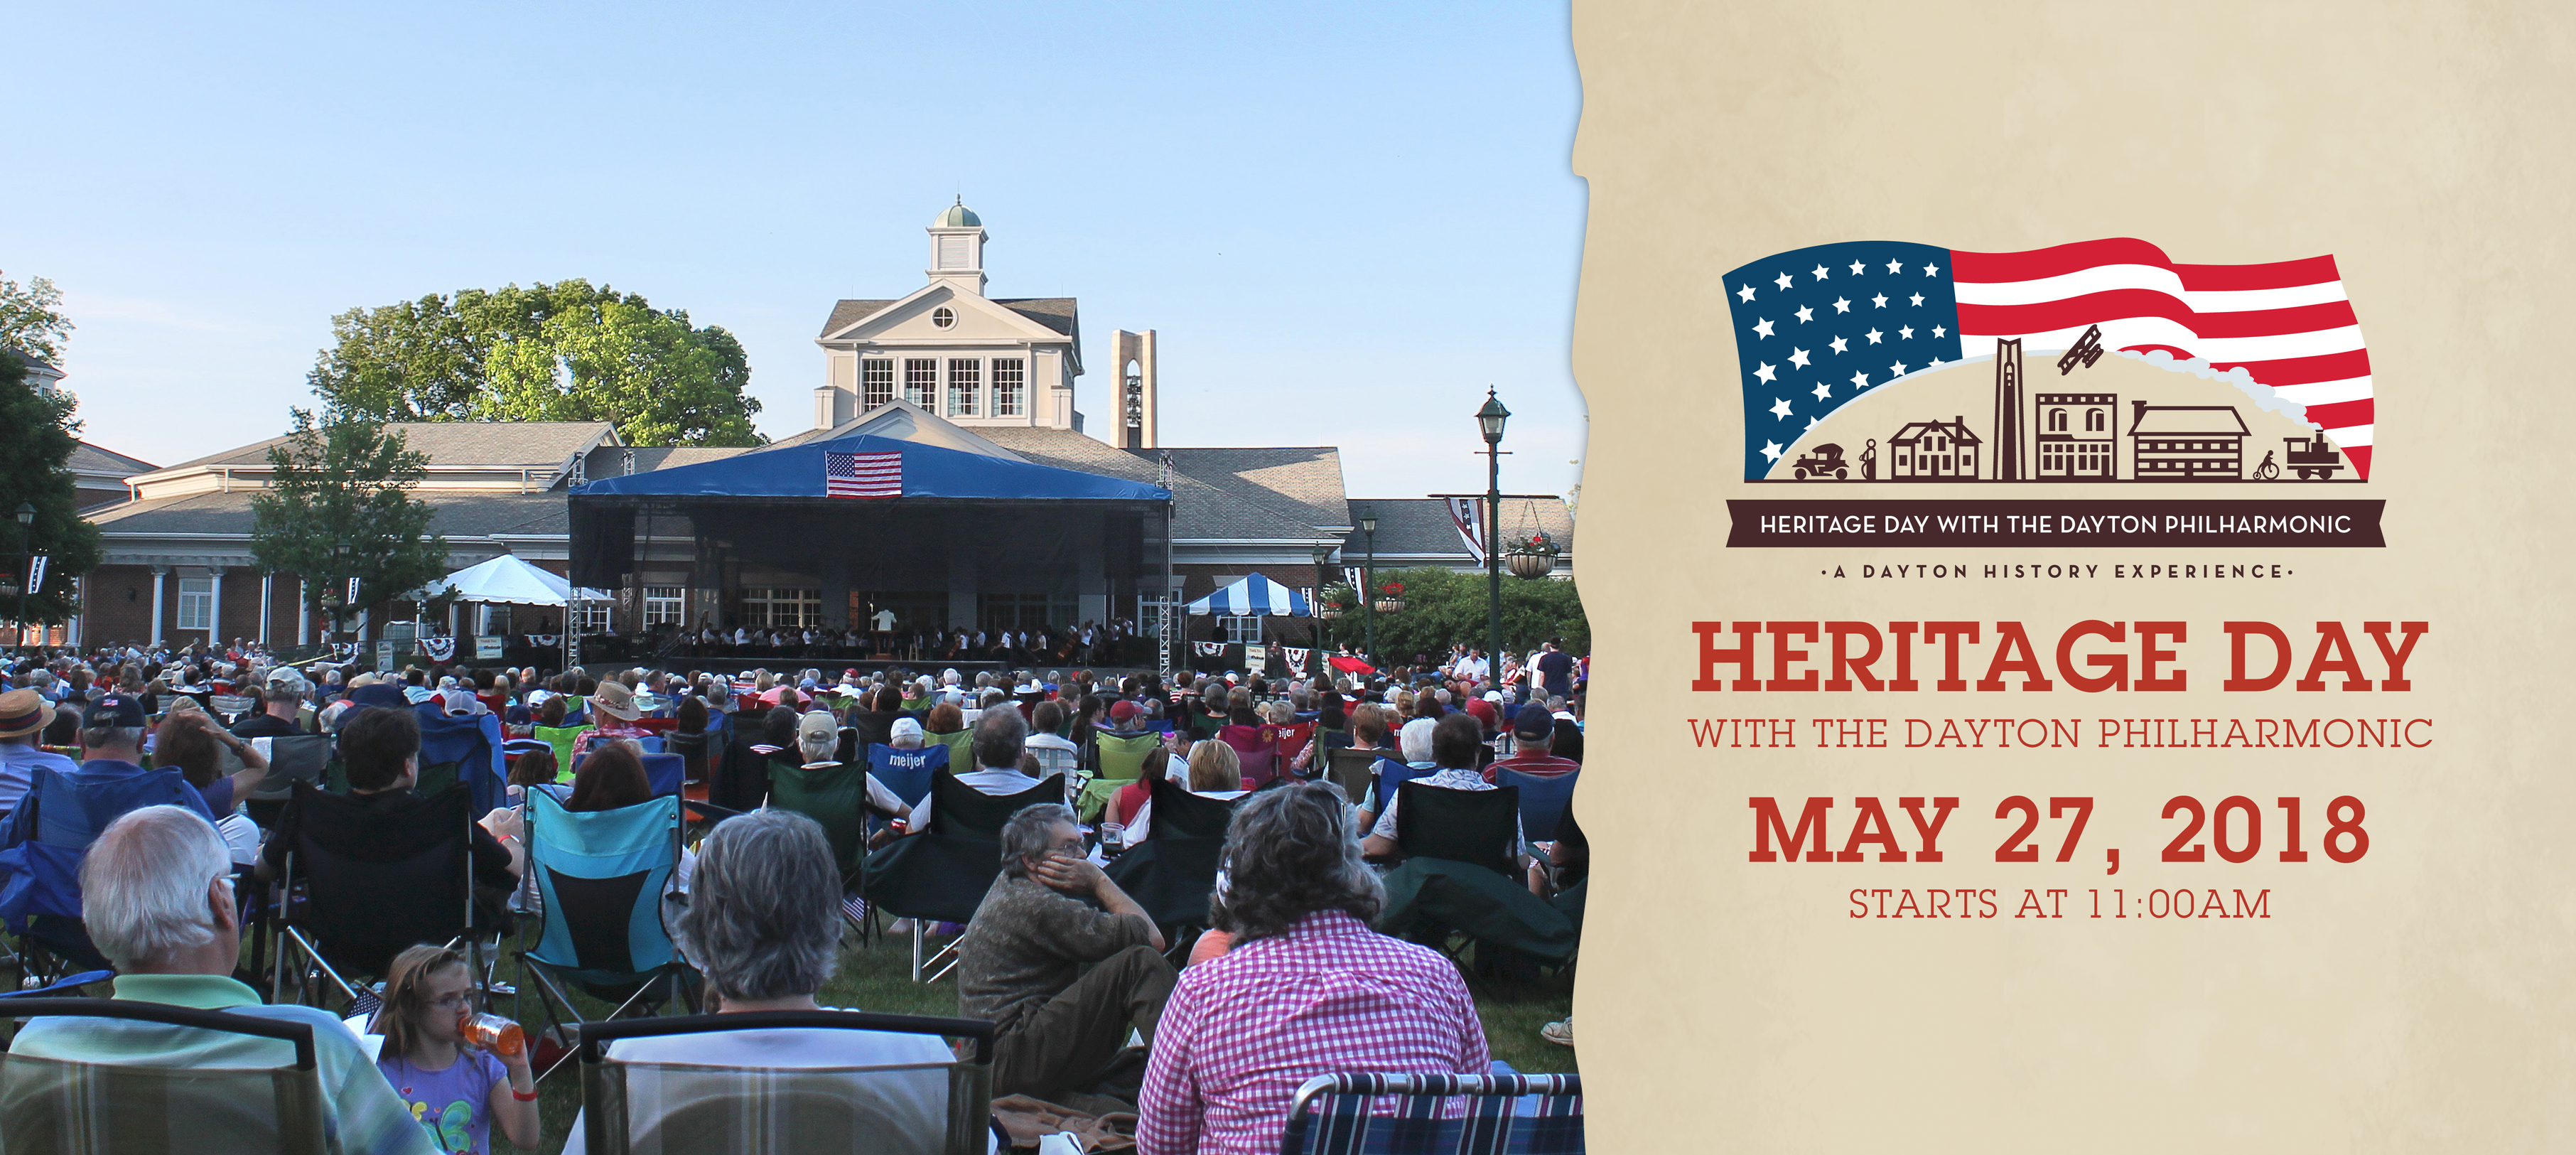 Join us for a Patriotic Celebration!